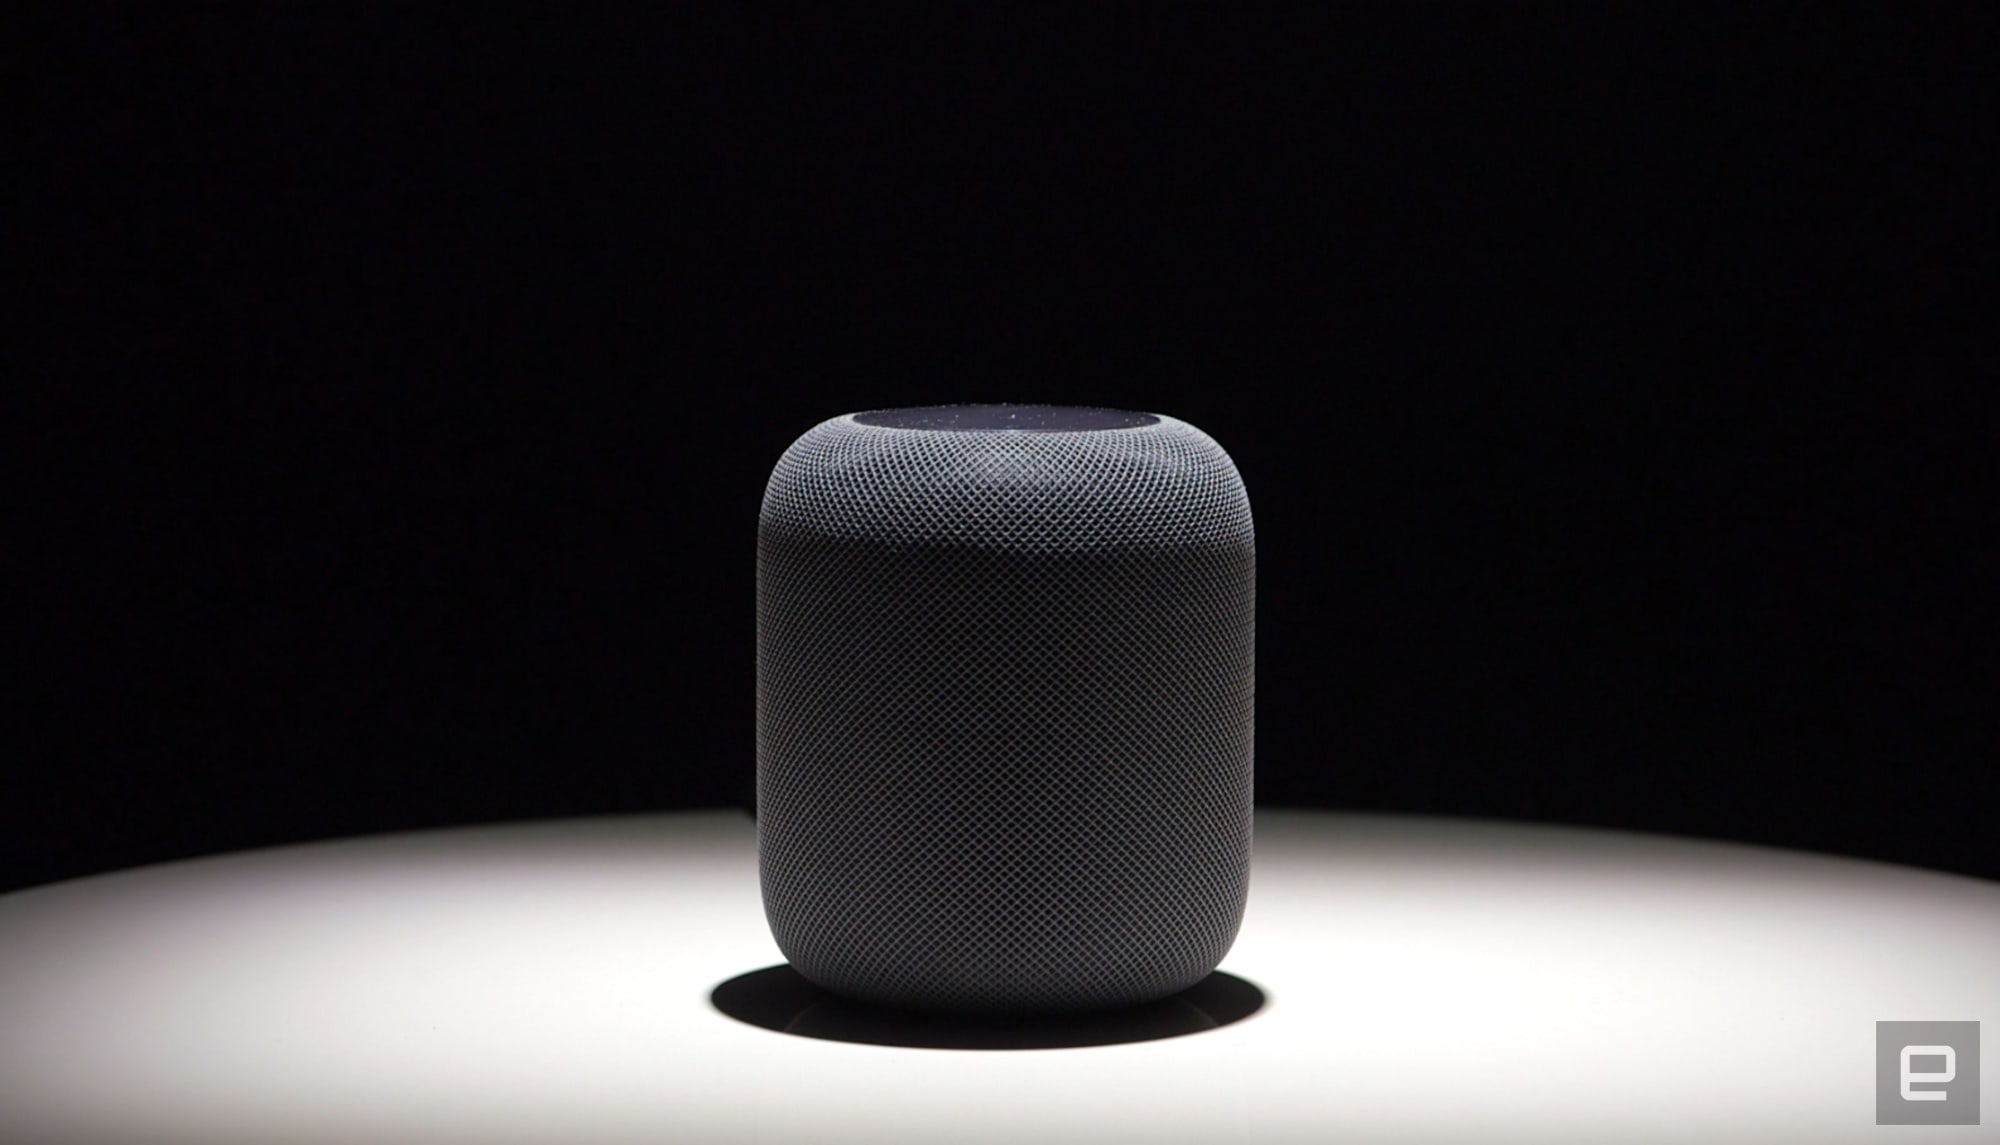 67e7f84fa4f Apple HomePod review: A great speaker that's not so smart